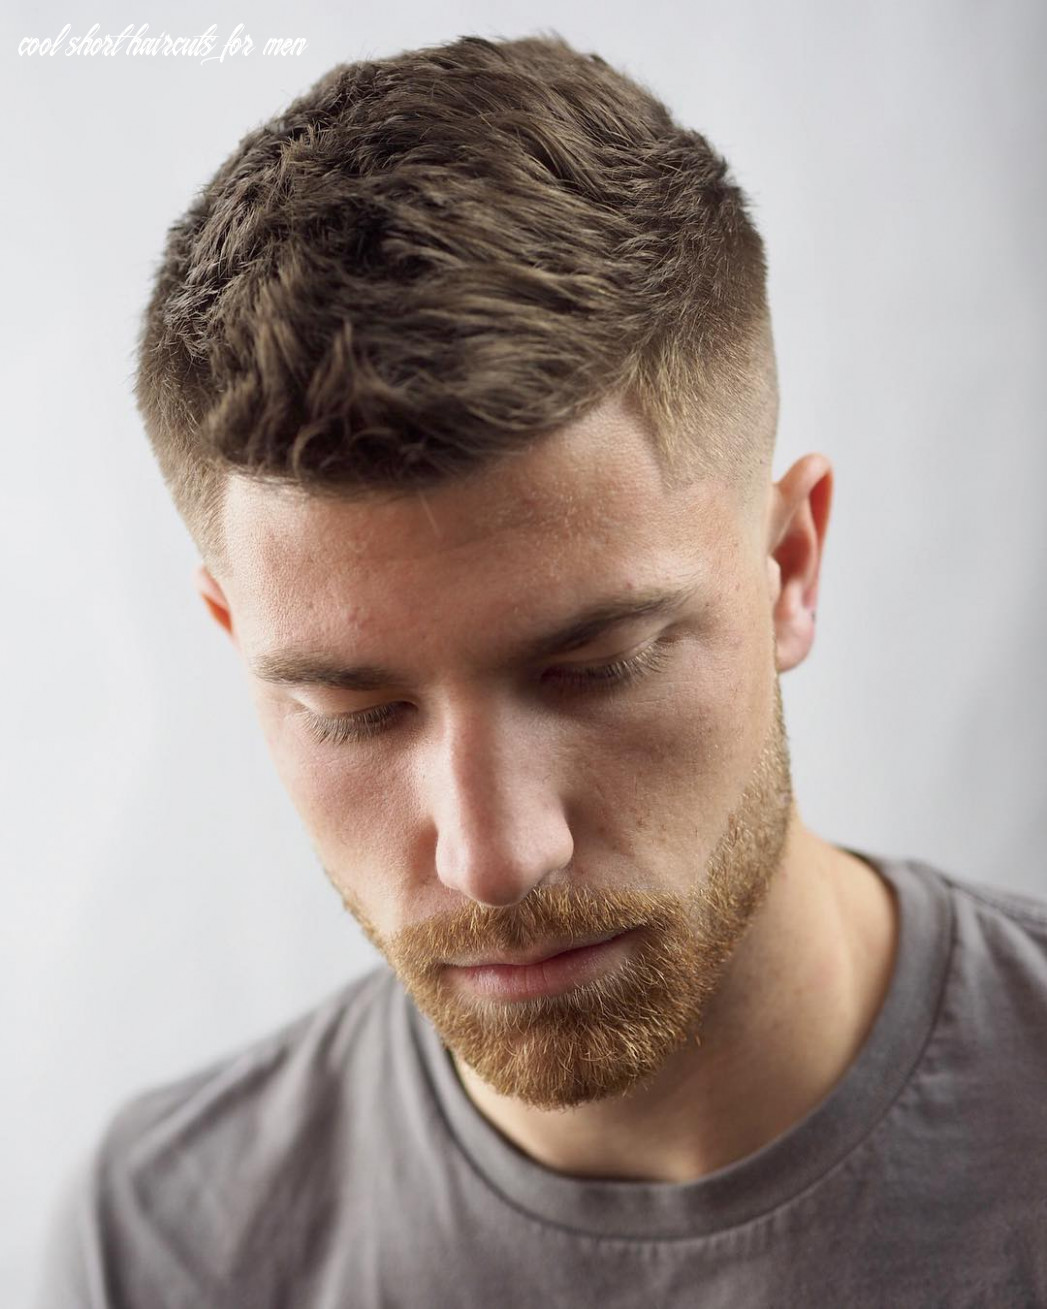 9 Cool Short Haircuts for Men